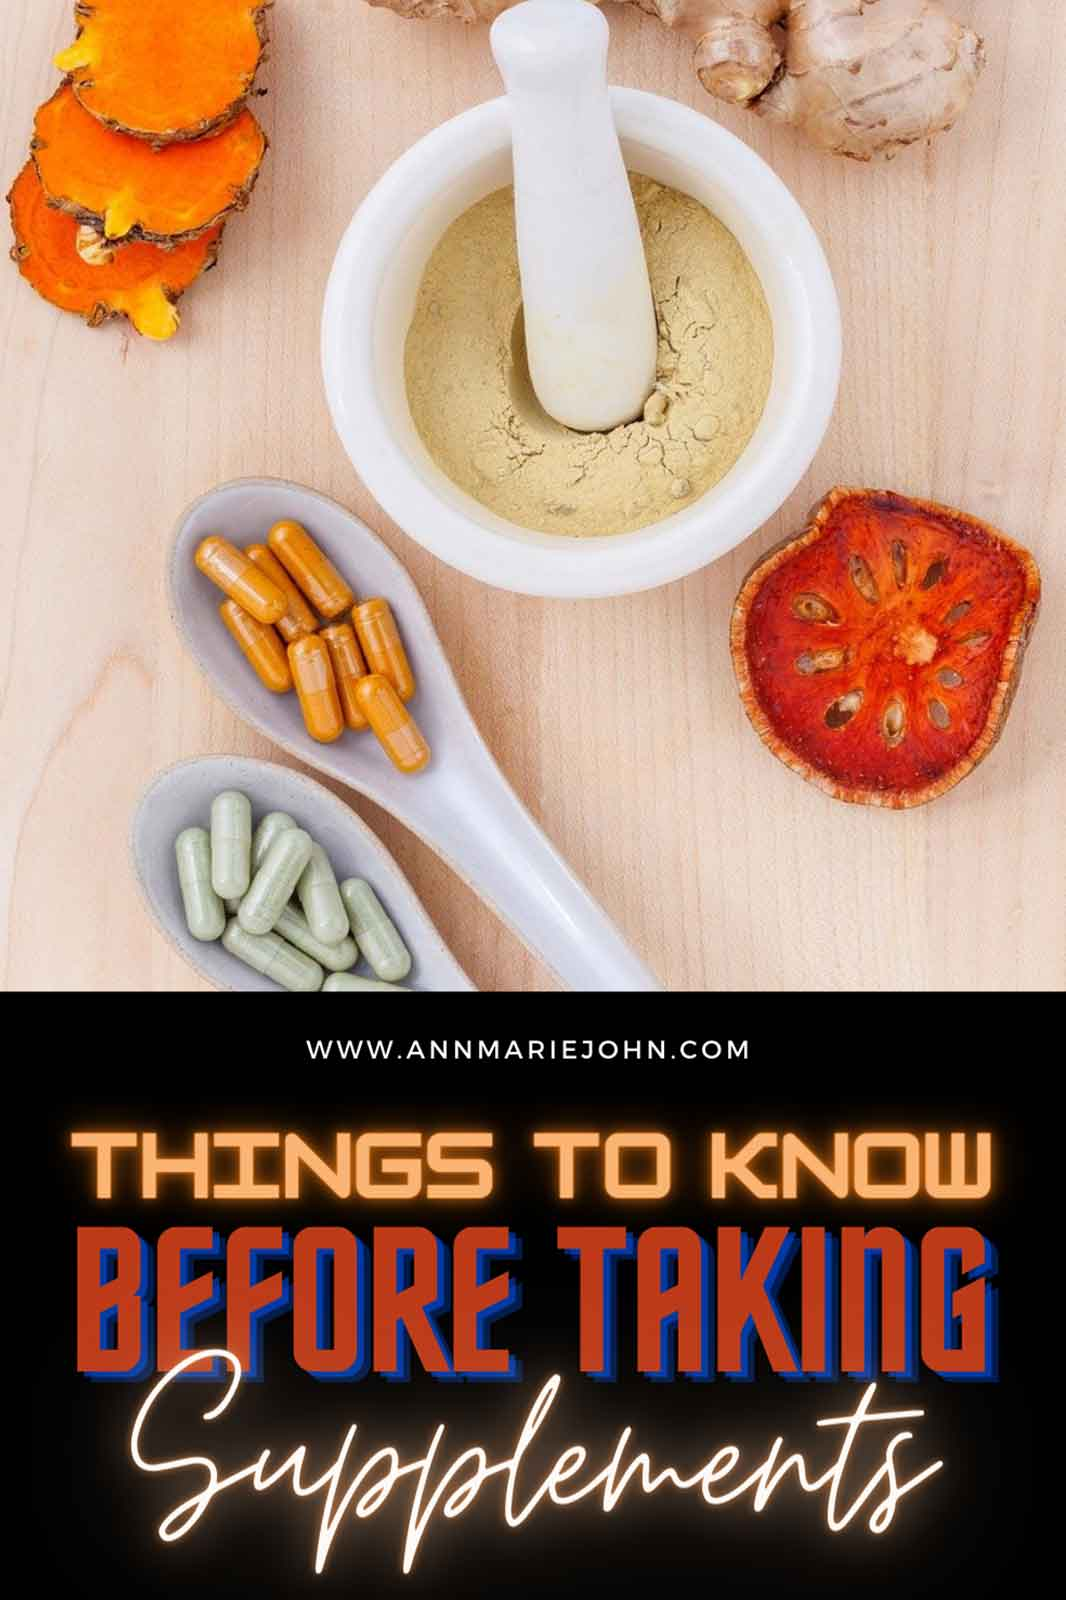 Key Things to Know Before Taking Nutritional Supplements